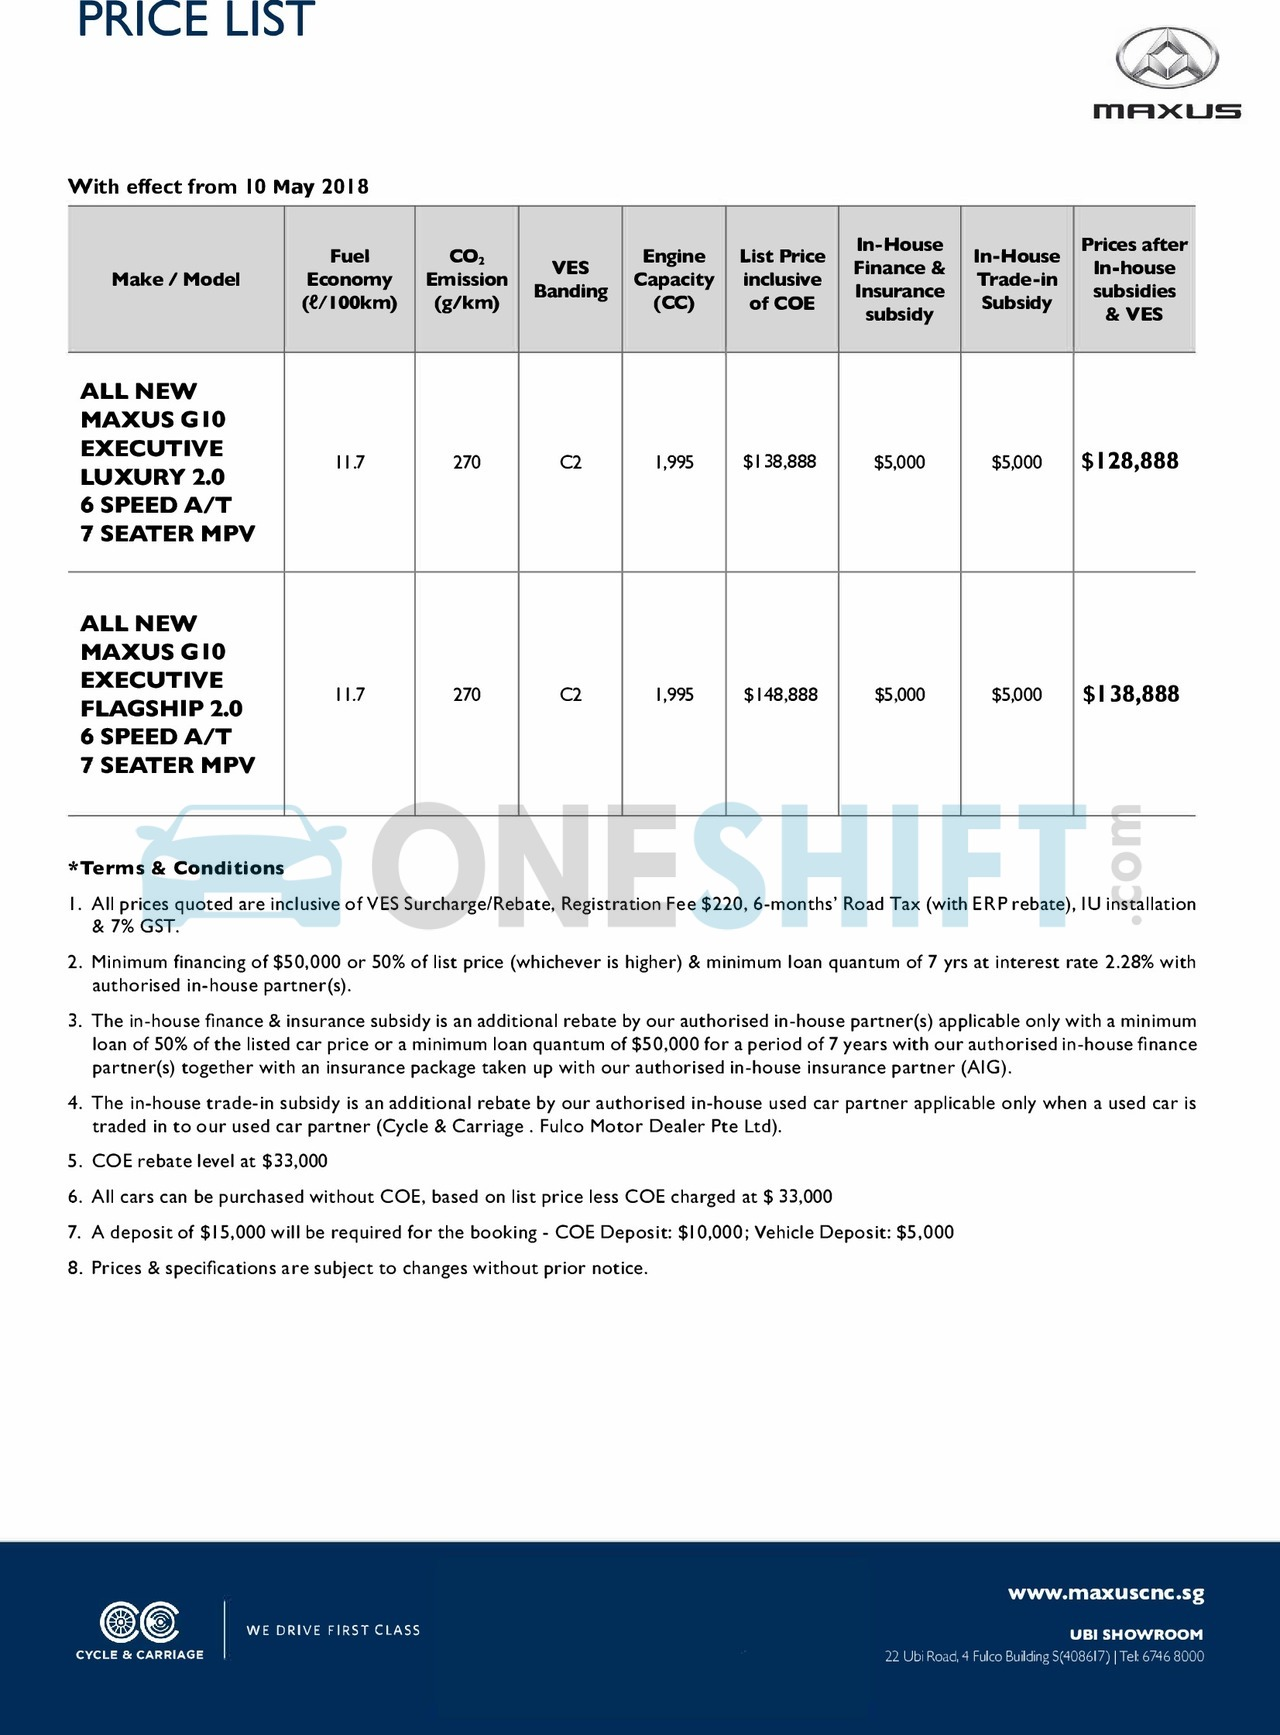 Maxus Singapore Printed Car Price List Oneshift Com